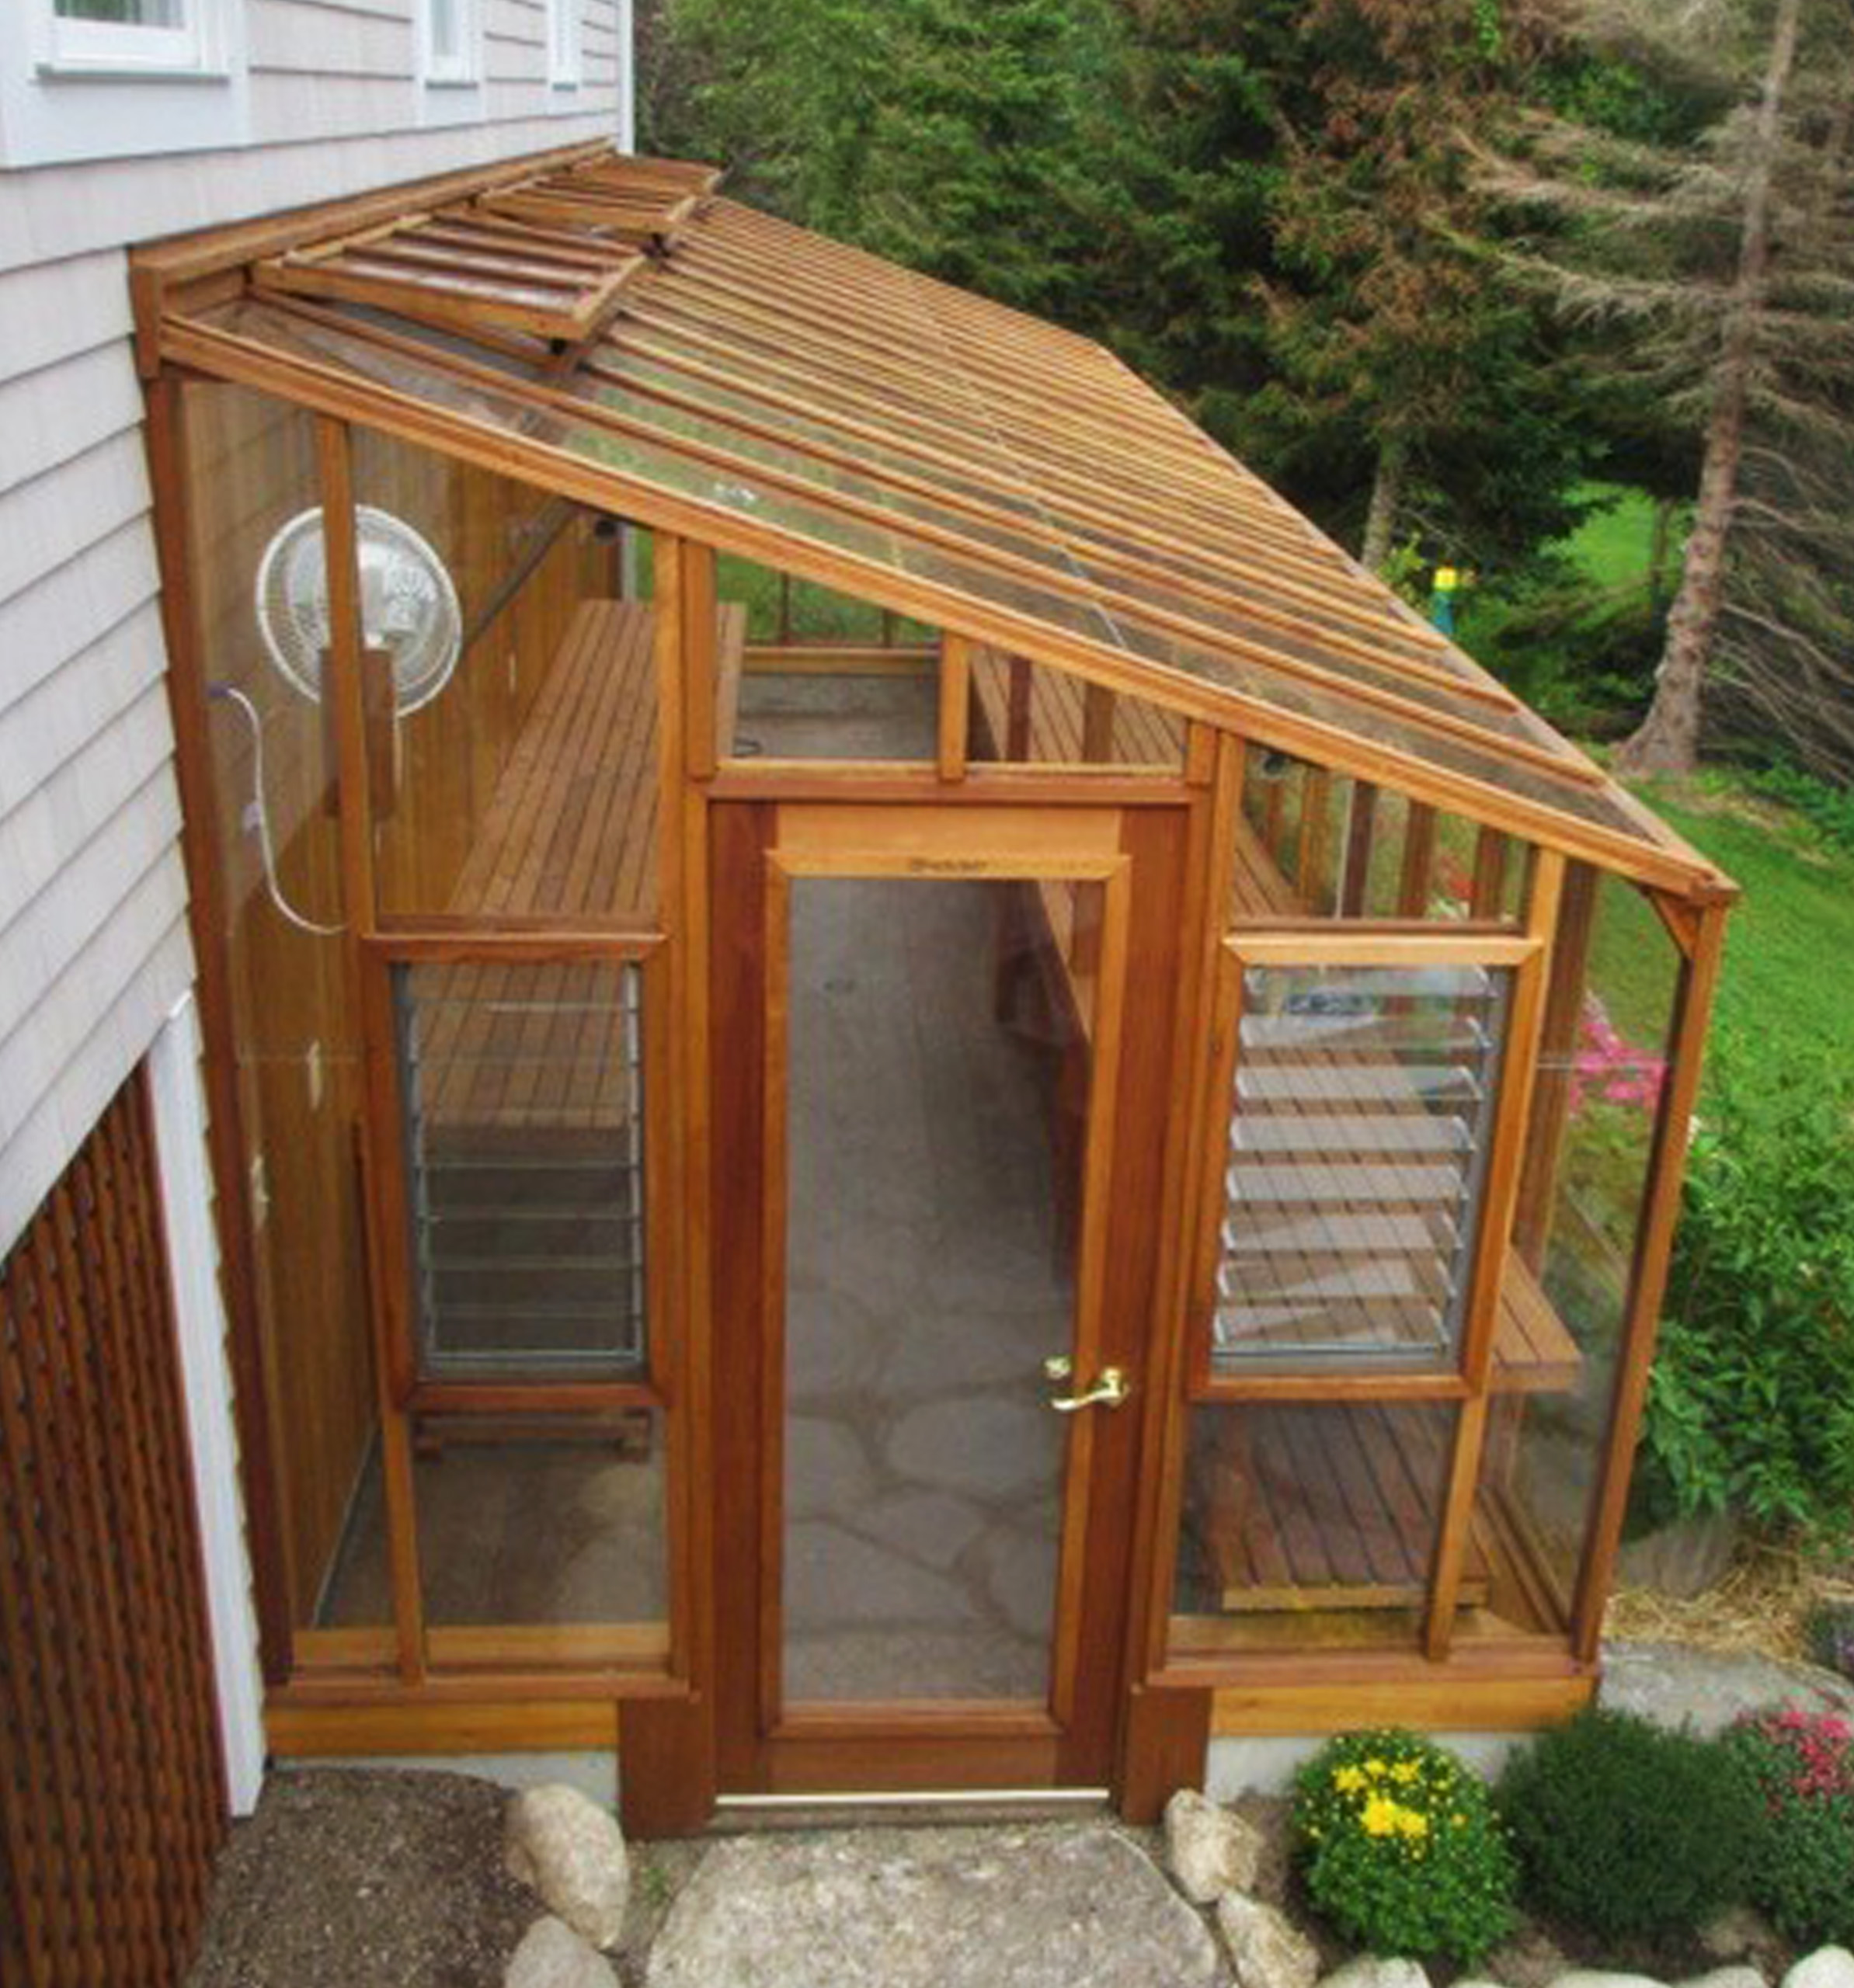 Deluxe Glass-to-Ground Lean-to